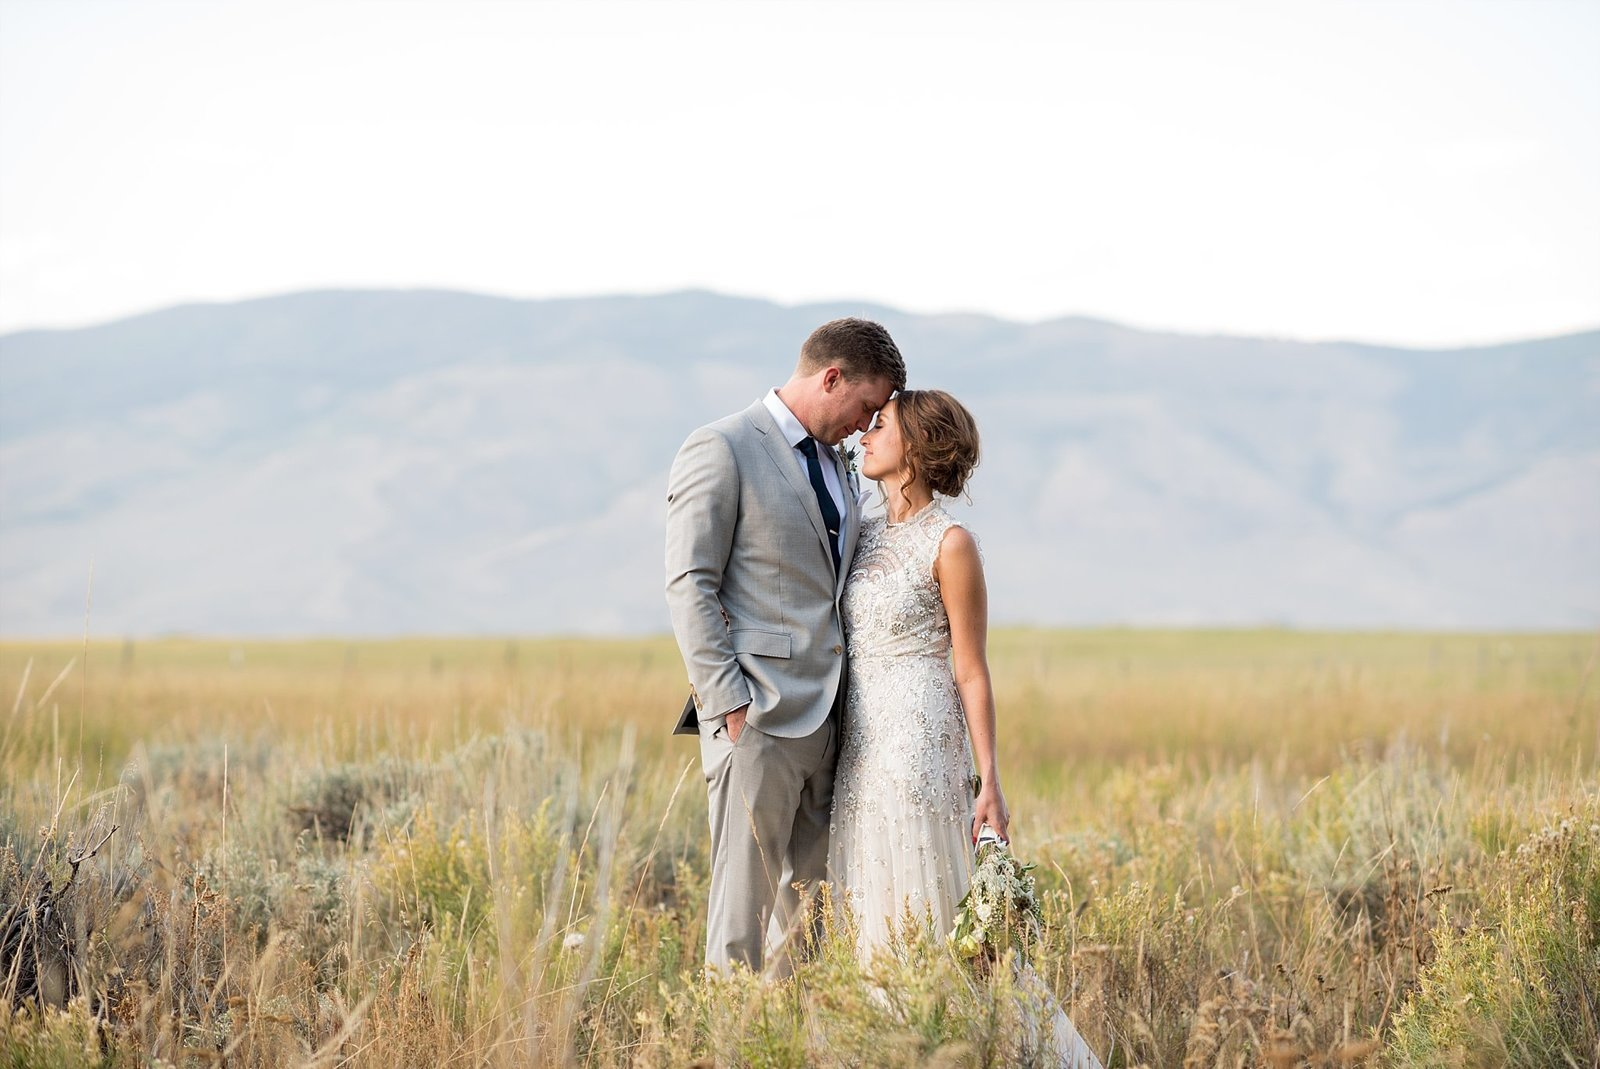 Elizabeth Ann Photography, Denver Wedding Photographer, Fine Art Wedding_2067